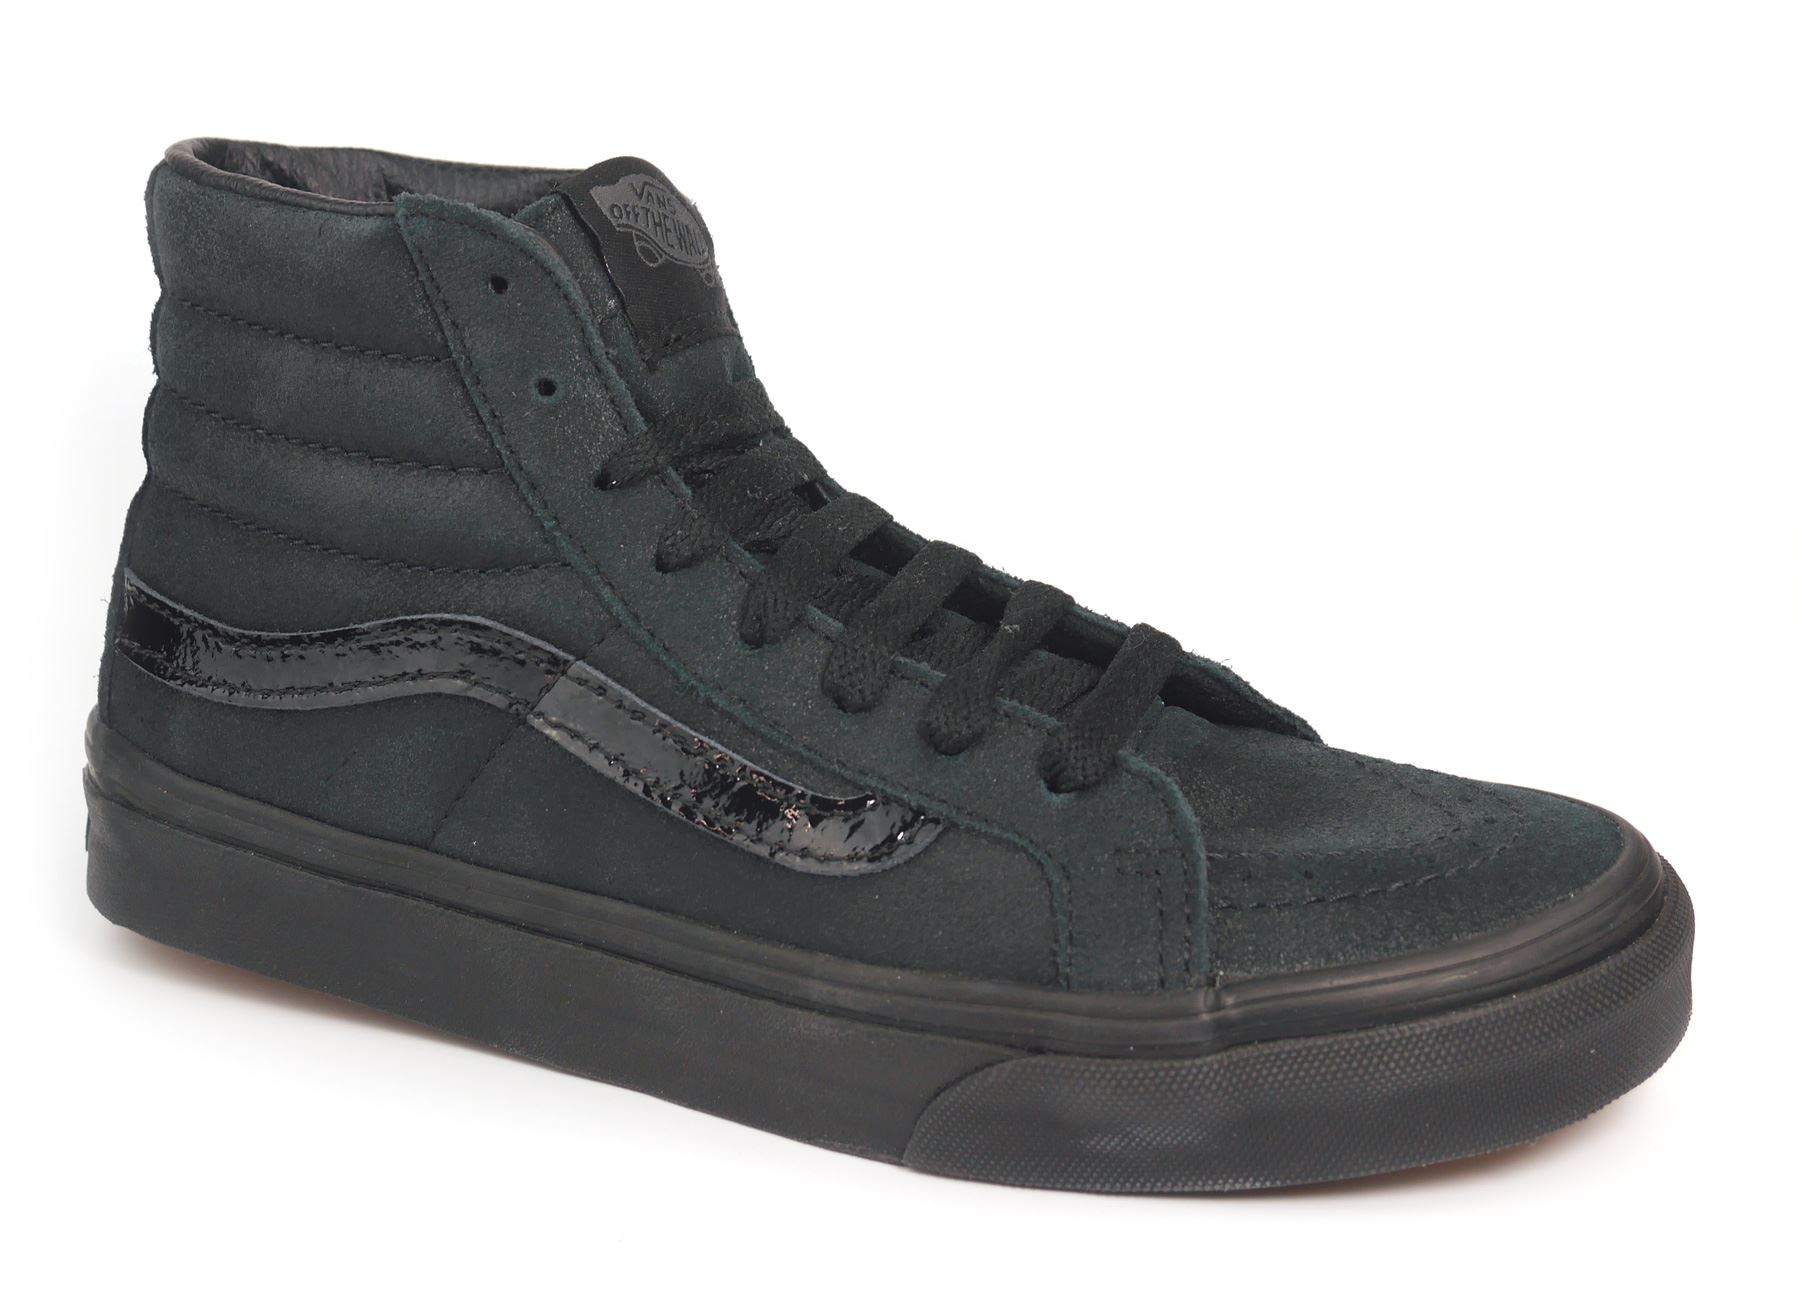 06334b022f These Vans (Patent Crackle) Sk8-Hi Slim in Black Black are a fun twist on  the classic black Sk8-Hi. With the durable and grippy Vans waffle sole